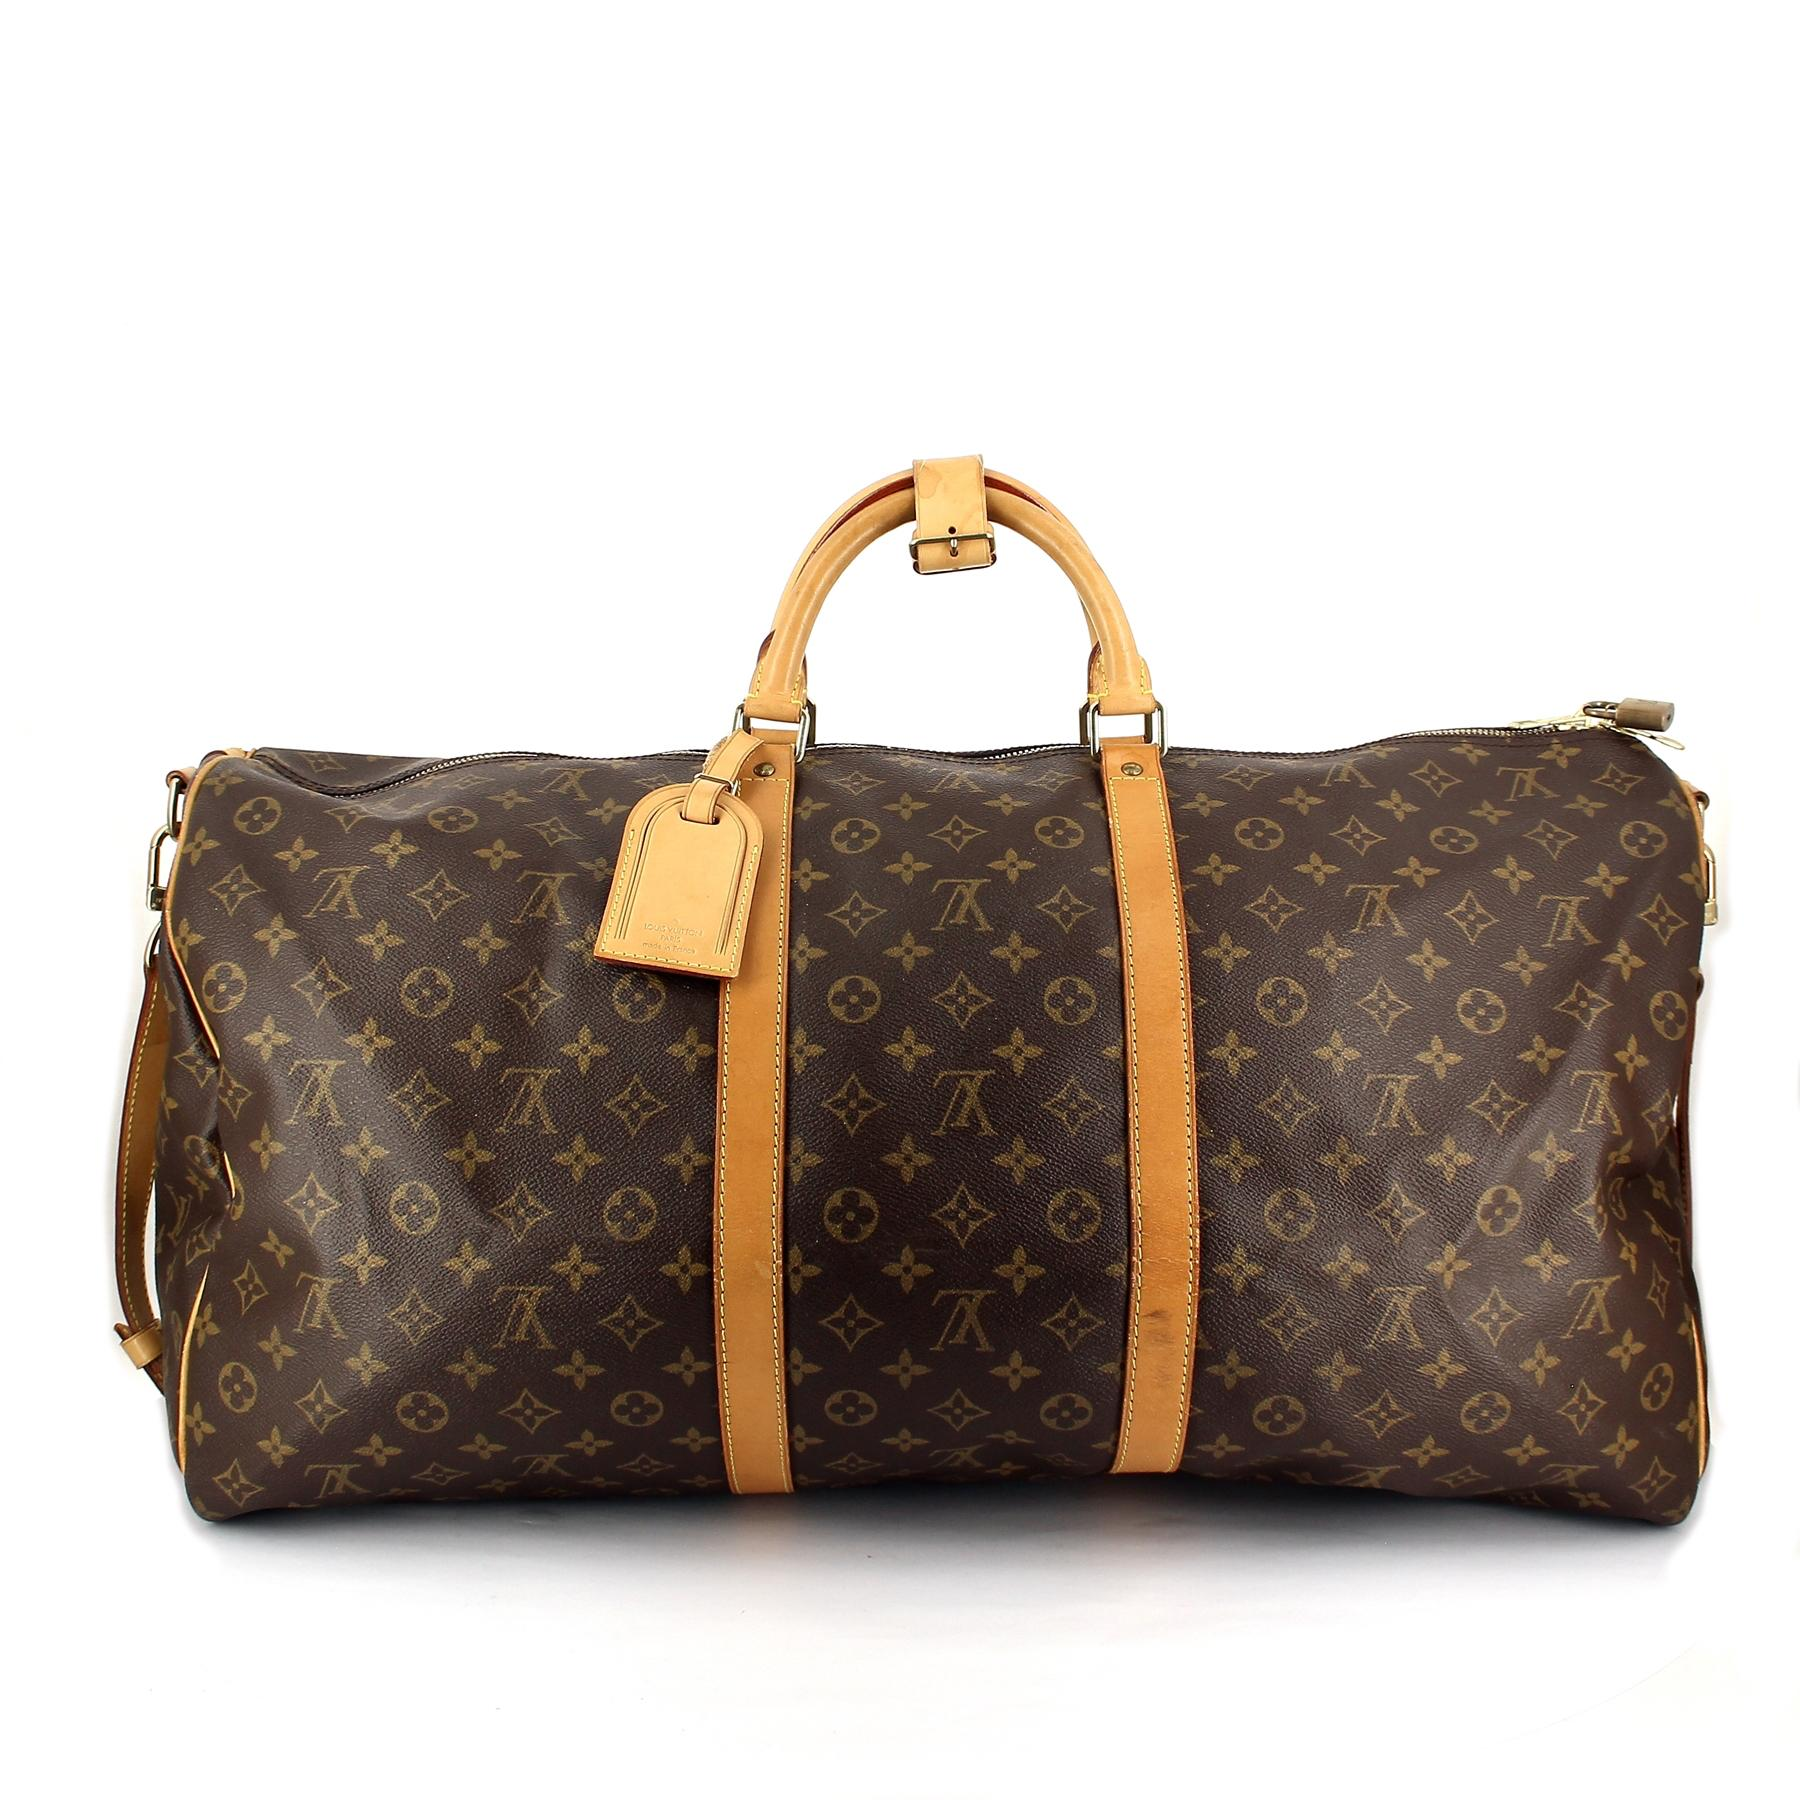 Le chic nomade du sac Keepall de Louis Vuitton - Madame Figaro d4939e58991